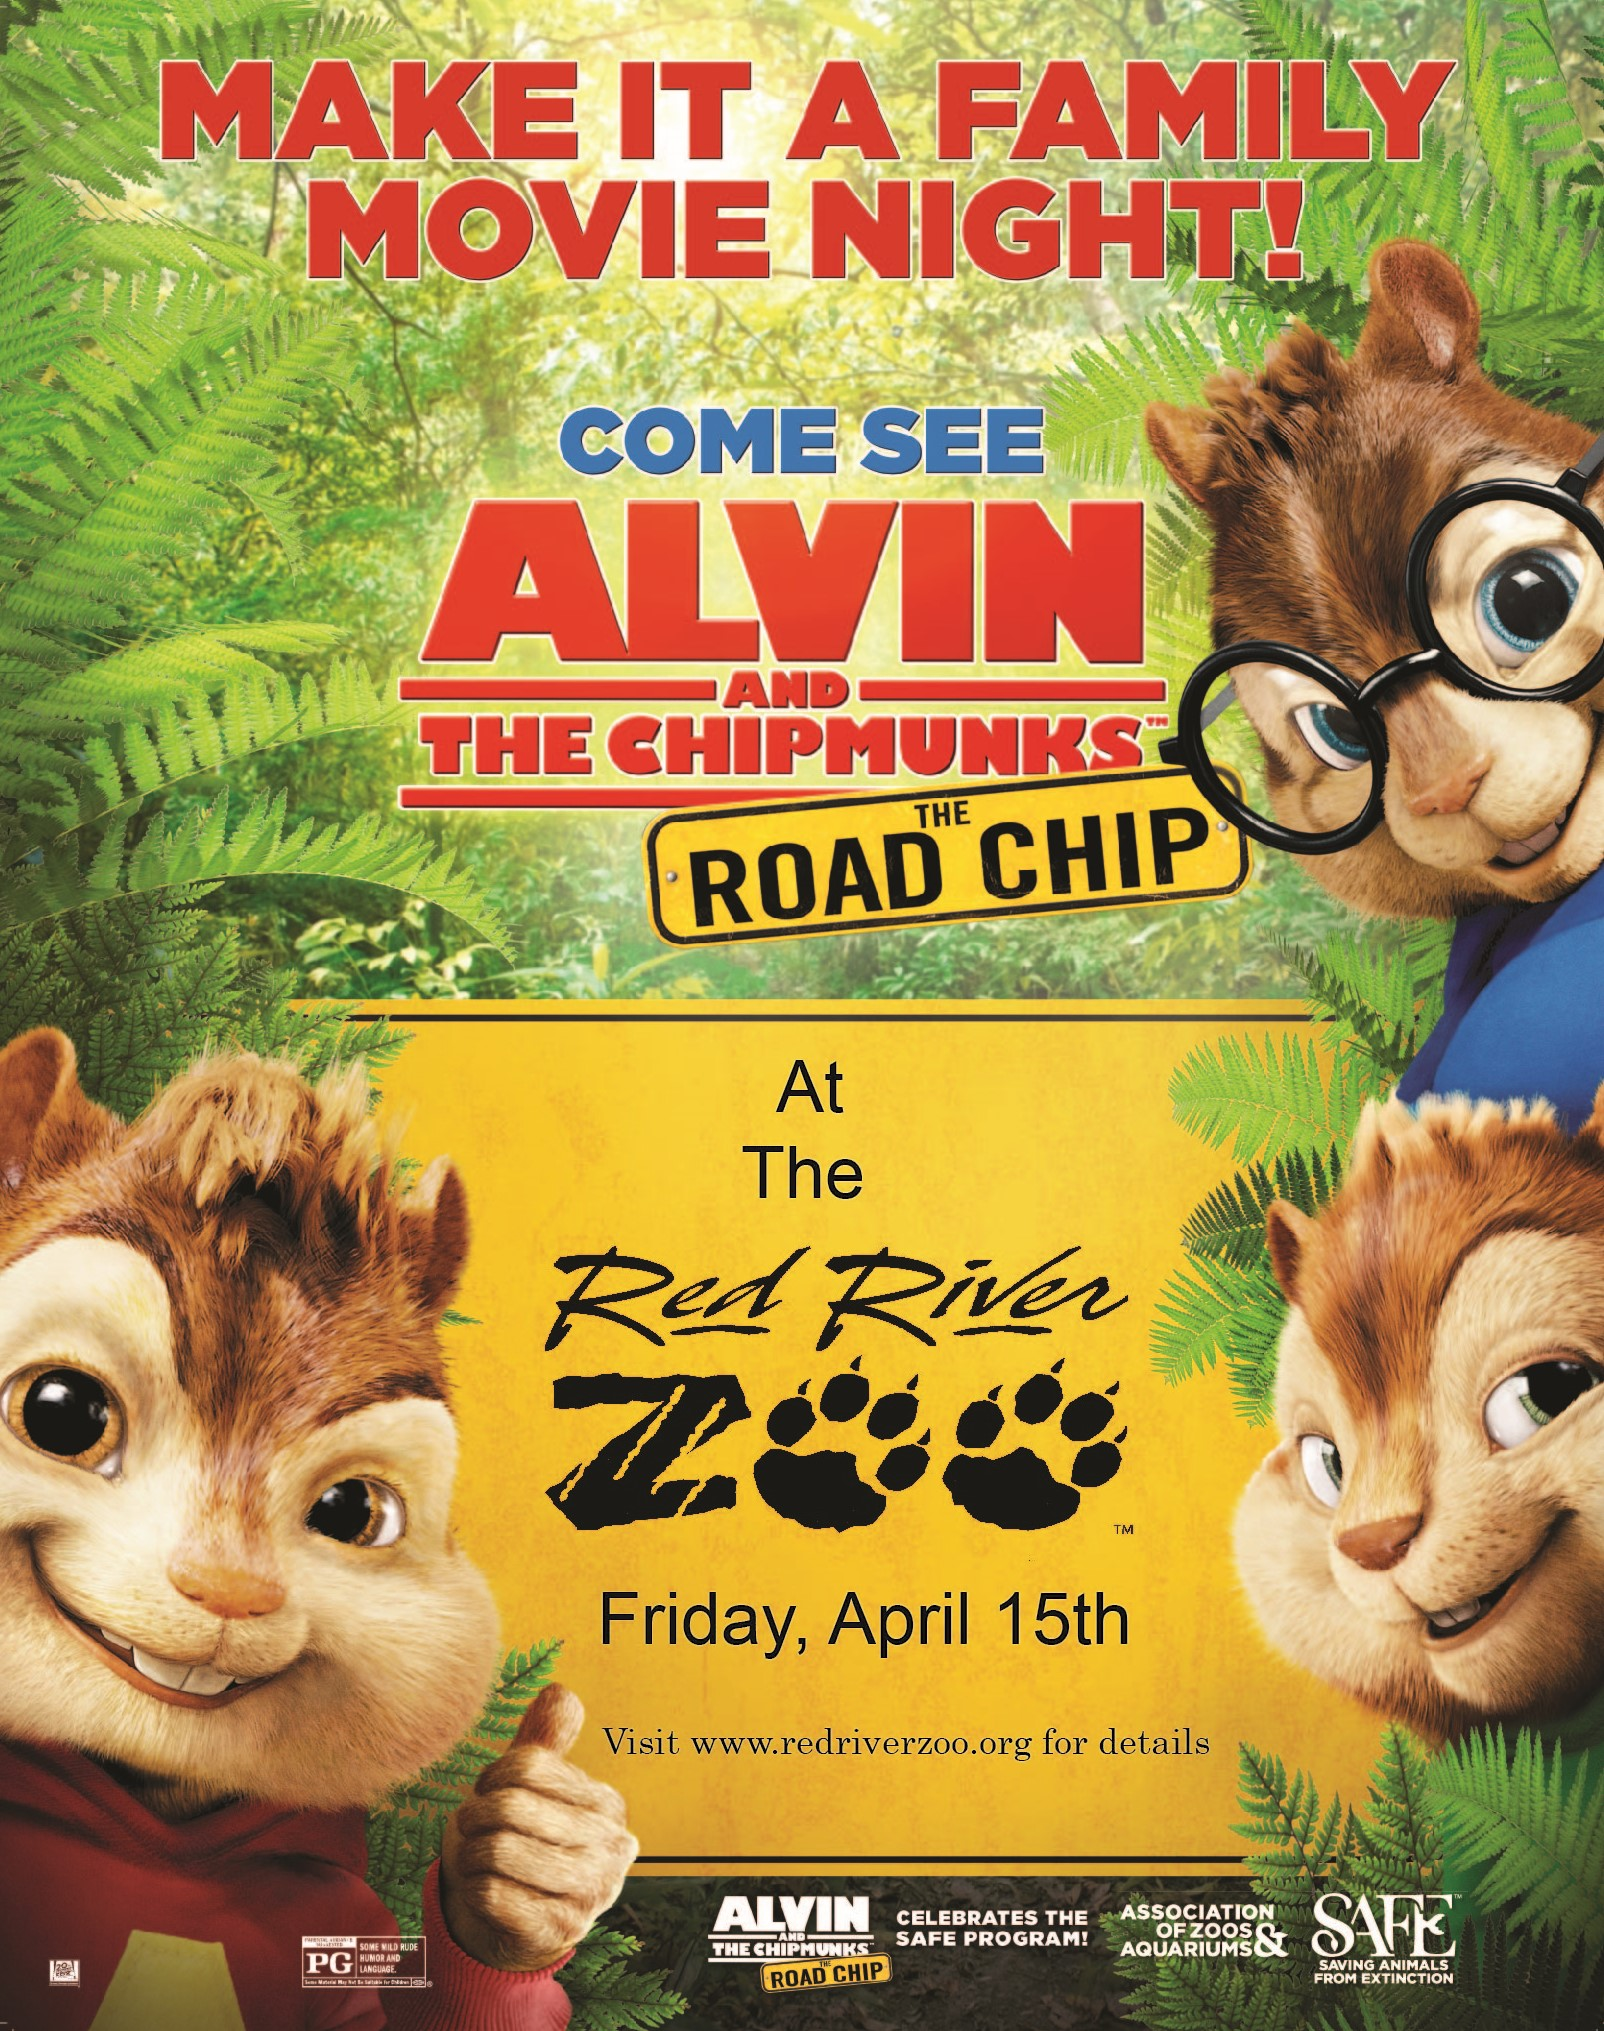 Alvin And The Chipmunks 2017 Serial Almeremi S Diary